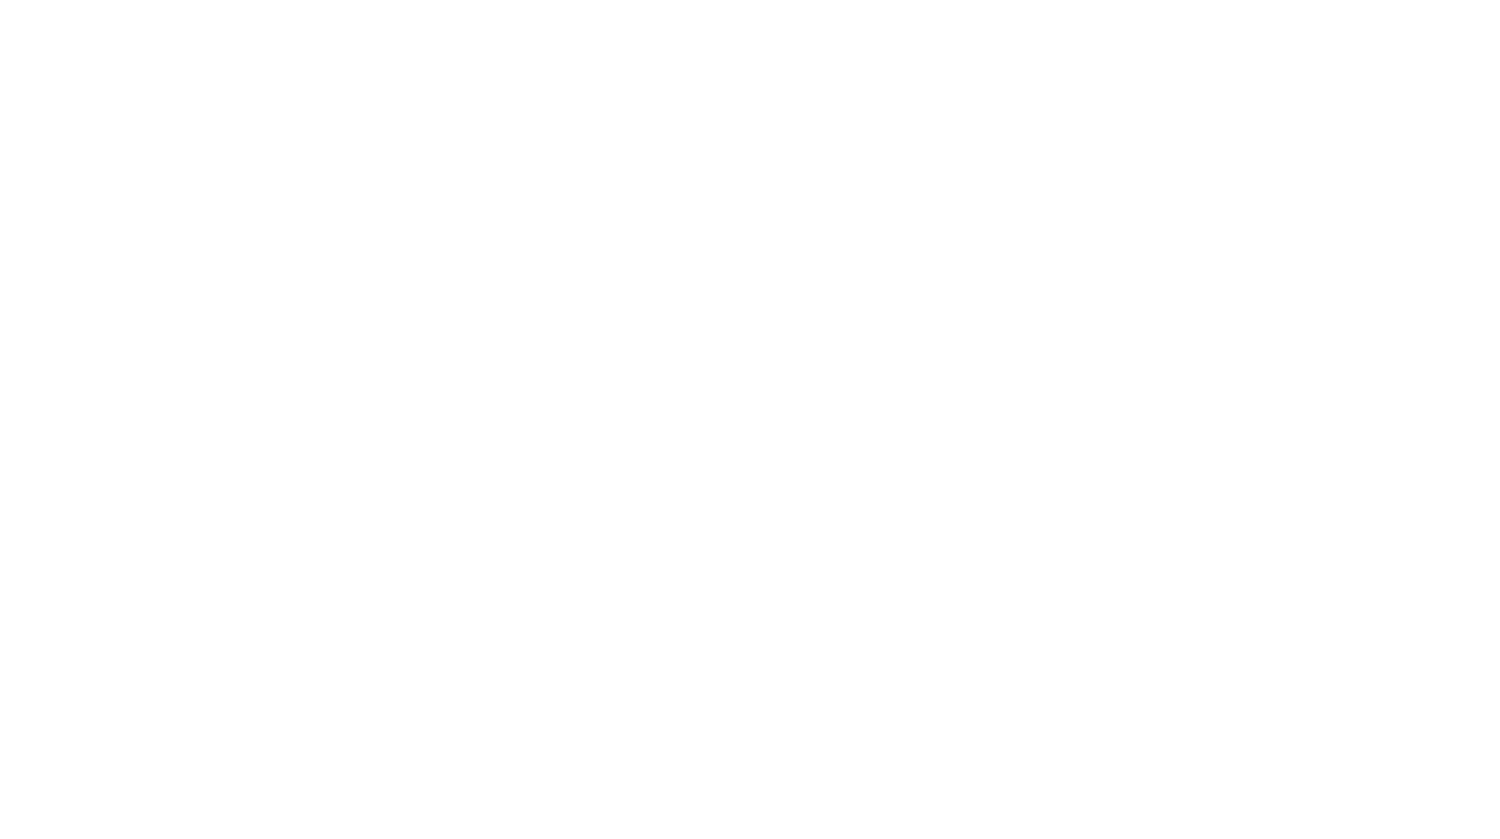 MINDBODY INTEGRATIVE